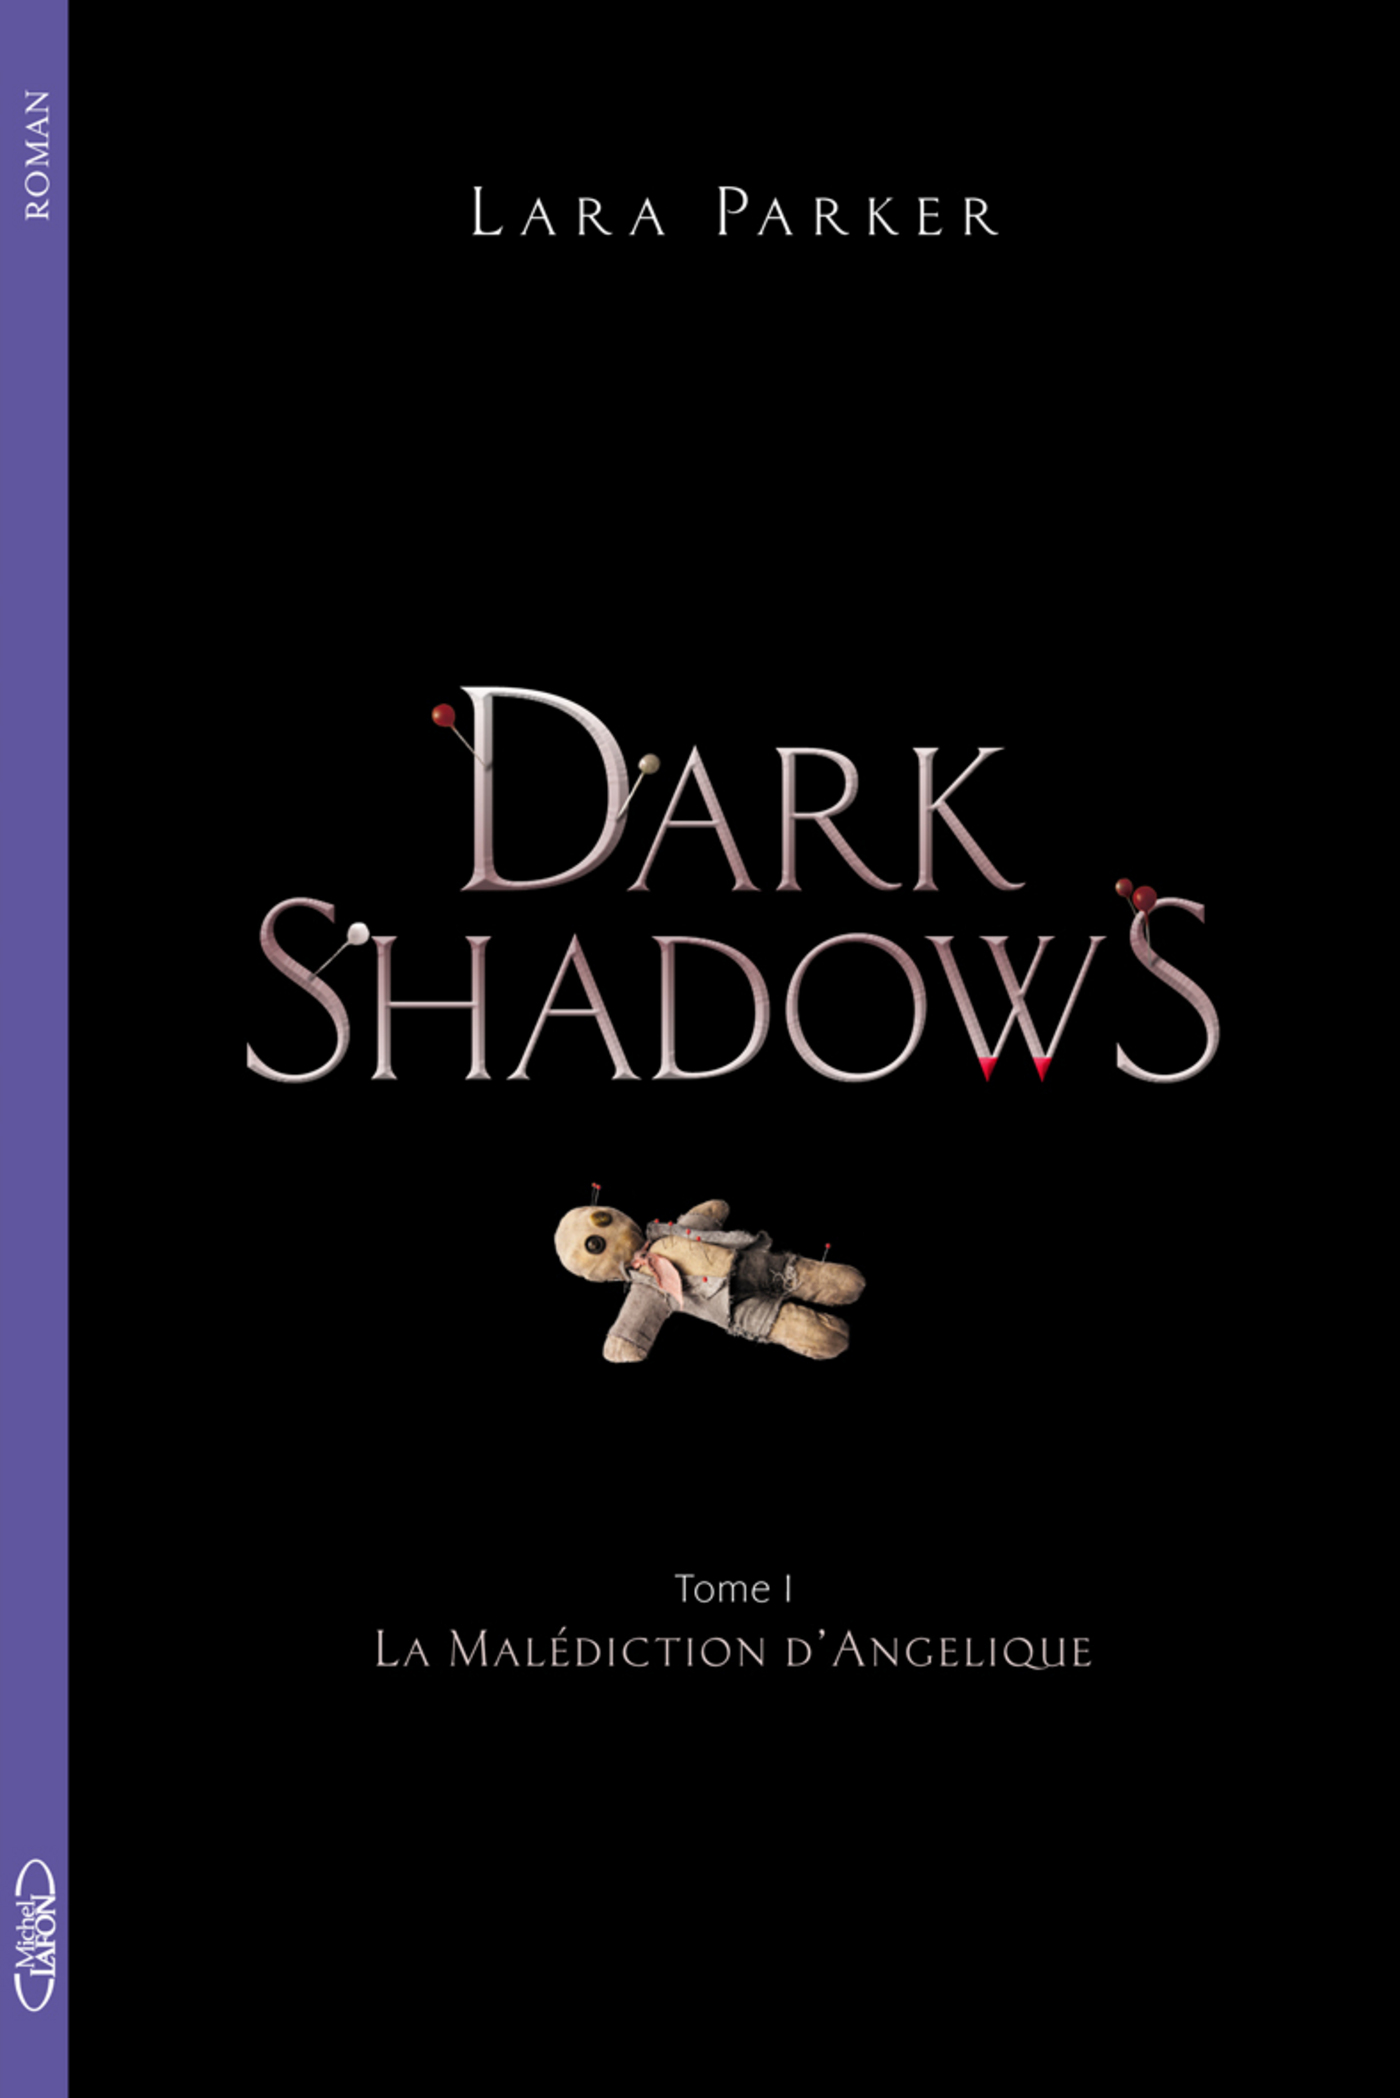 Dark Shadows T01 La malédiction d'Angélique